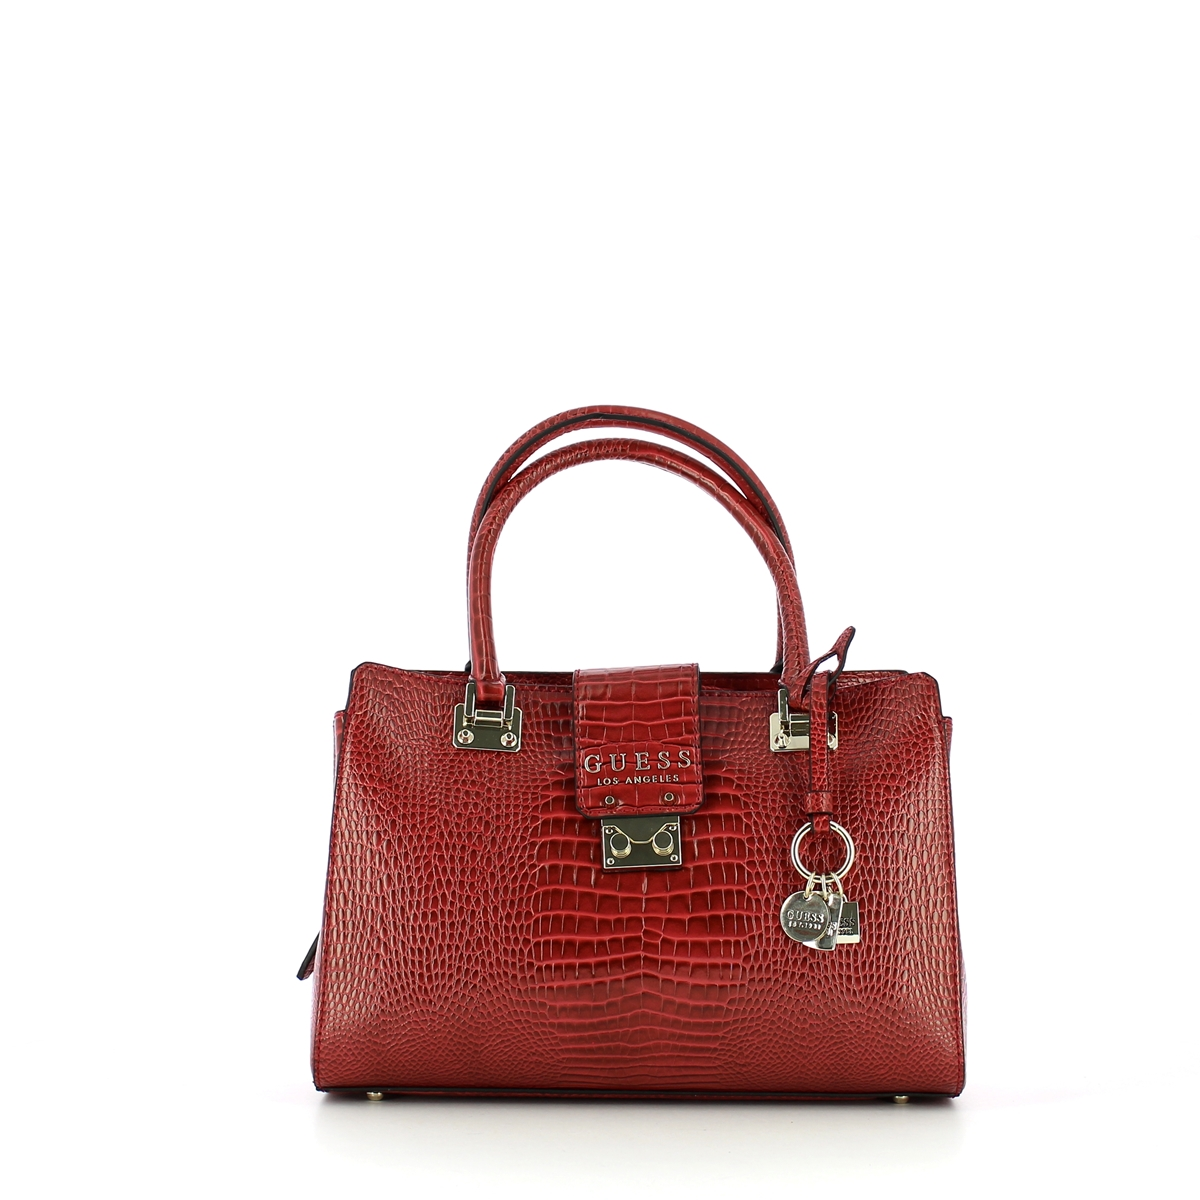 BORSA A MANO Cleo effetto Cocco Guess MERLOT EUR 119,20